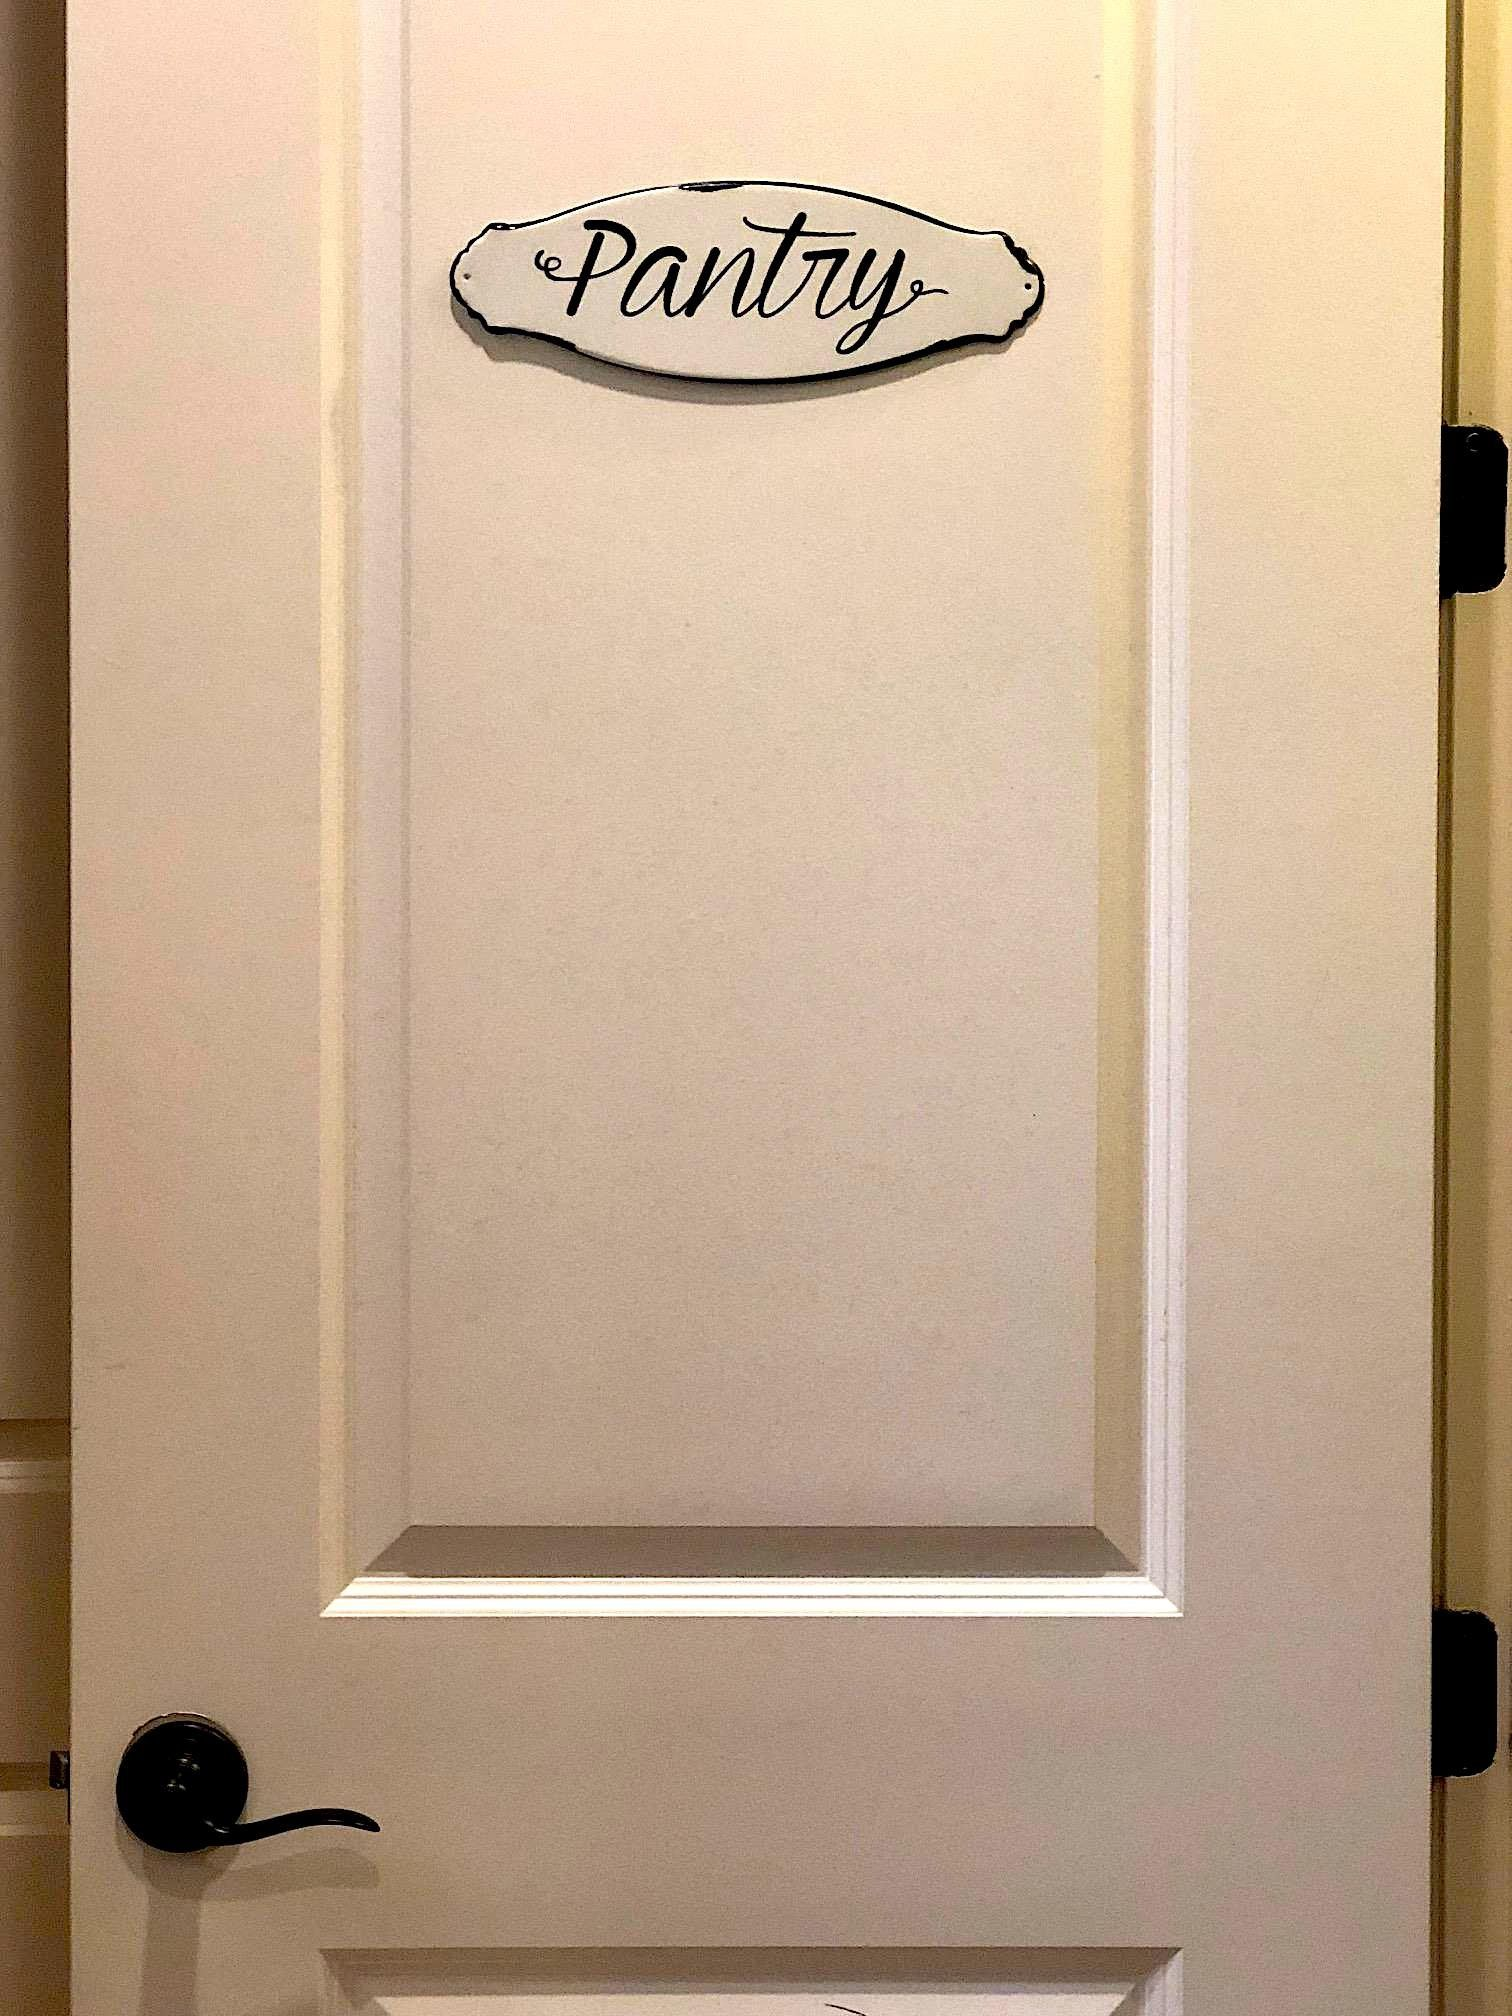 Pantry Sign Wall Door Kitchen Designation Plaque Metal Rustic White And Black Enamel 12 X 4 Check Out This Great Product Pantry Sign Wall Signs Metal Plaque